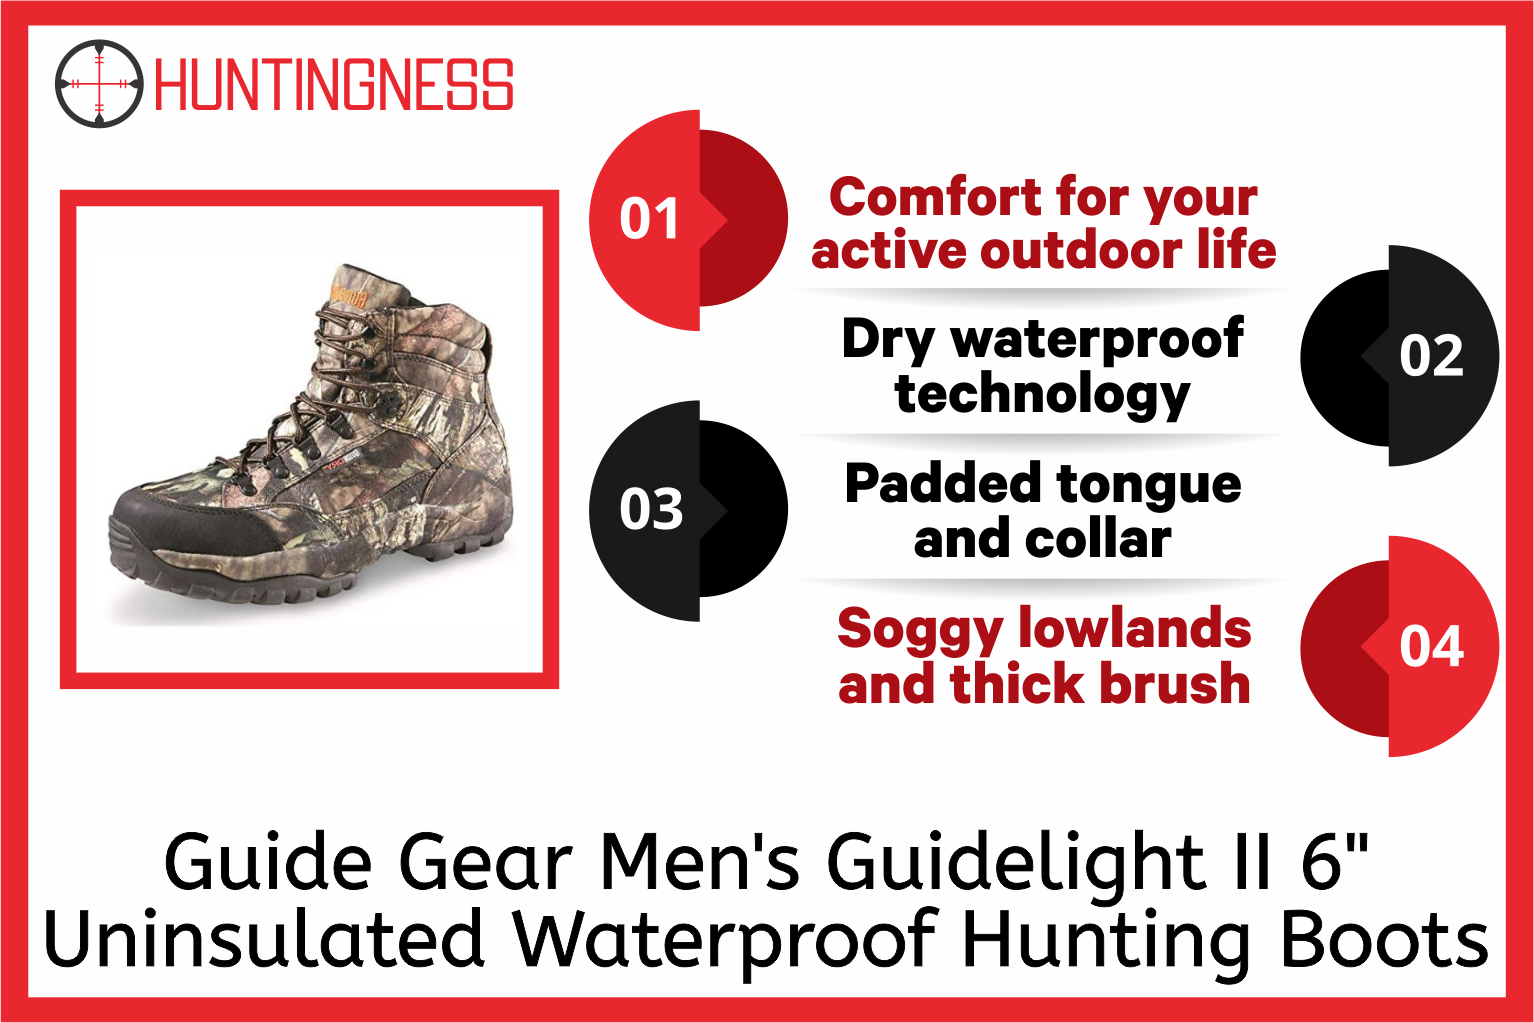 Guide Gear Men's Guidelight II 6 Uninsulated Waterproof Hunting Boots infographics